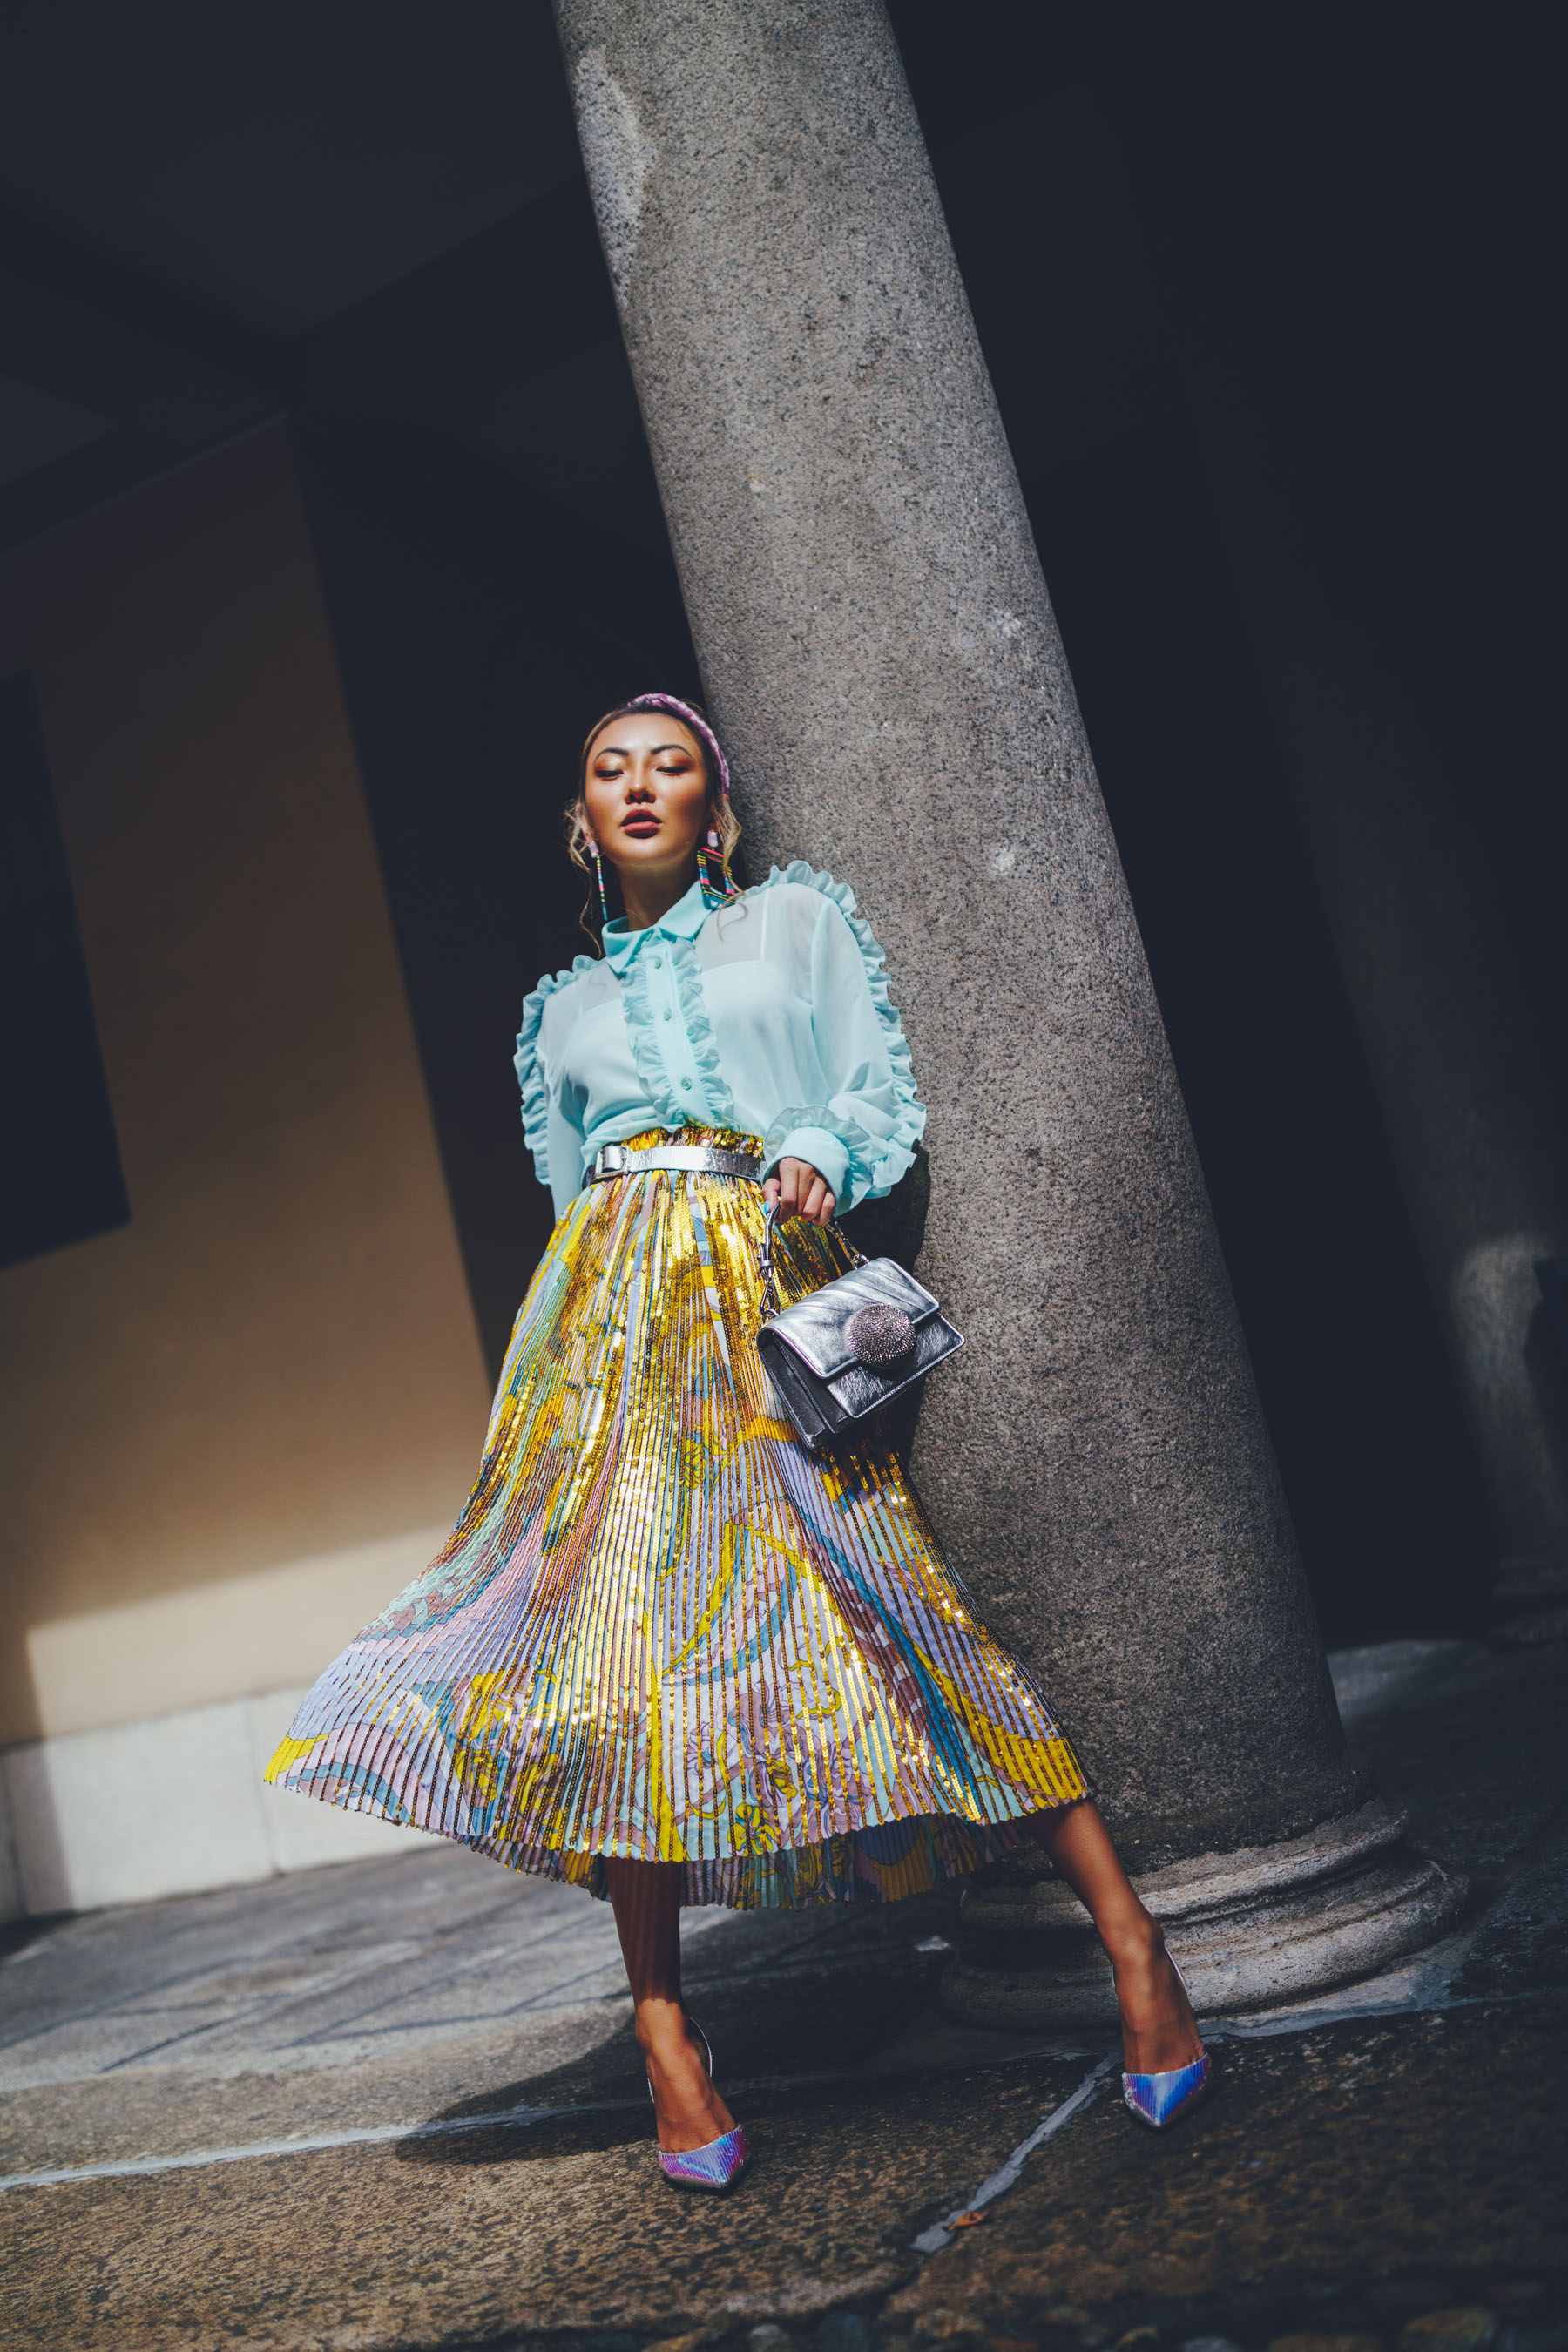 Emilio Pucci pleated skirt, mary jane claverol earrings, gedebe top handle handbag, amina muaddi slingback pumps // Notjessfashion.com